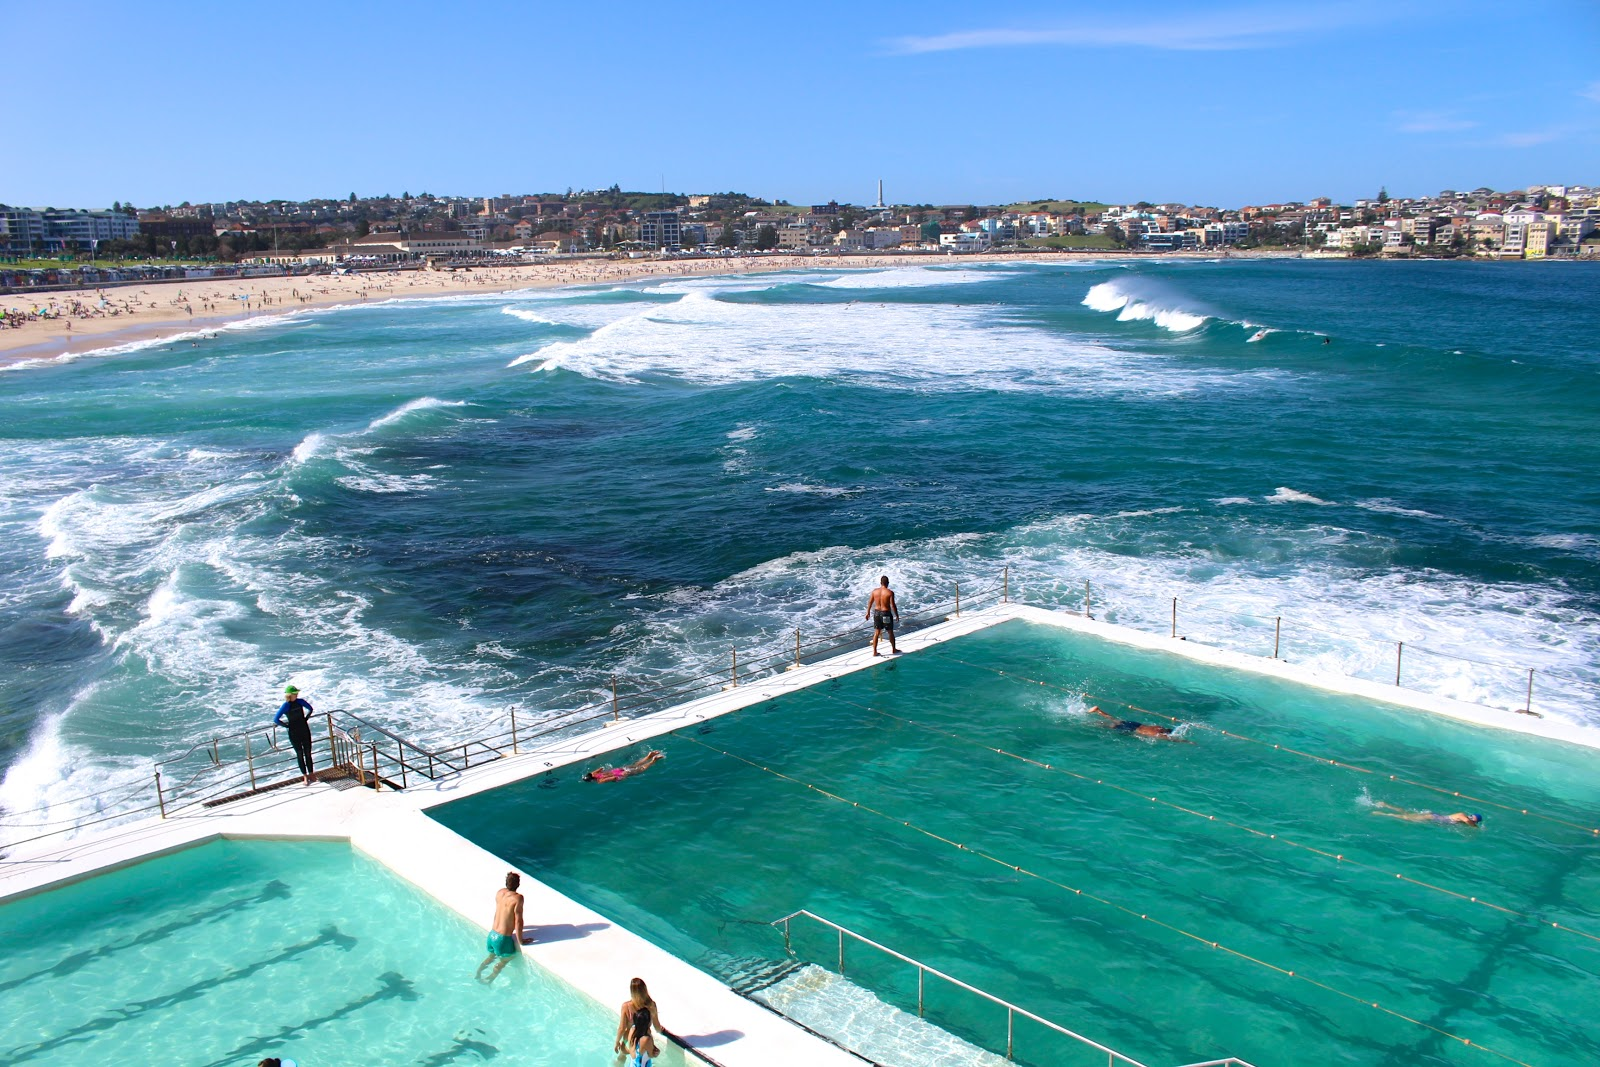 Travel blog whiskers & lions - Bondi Beach icebergs